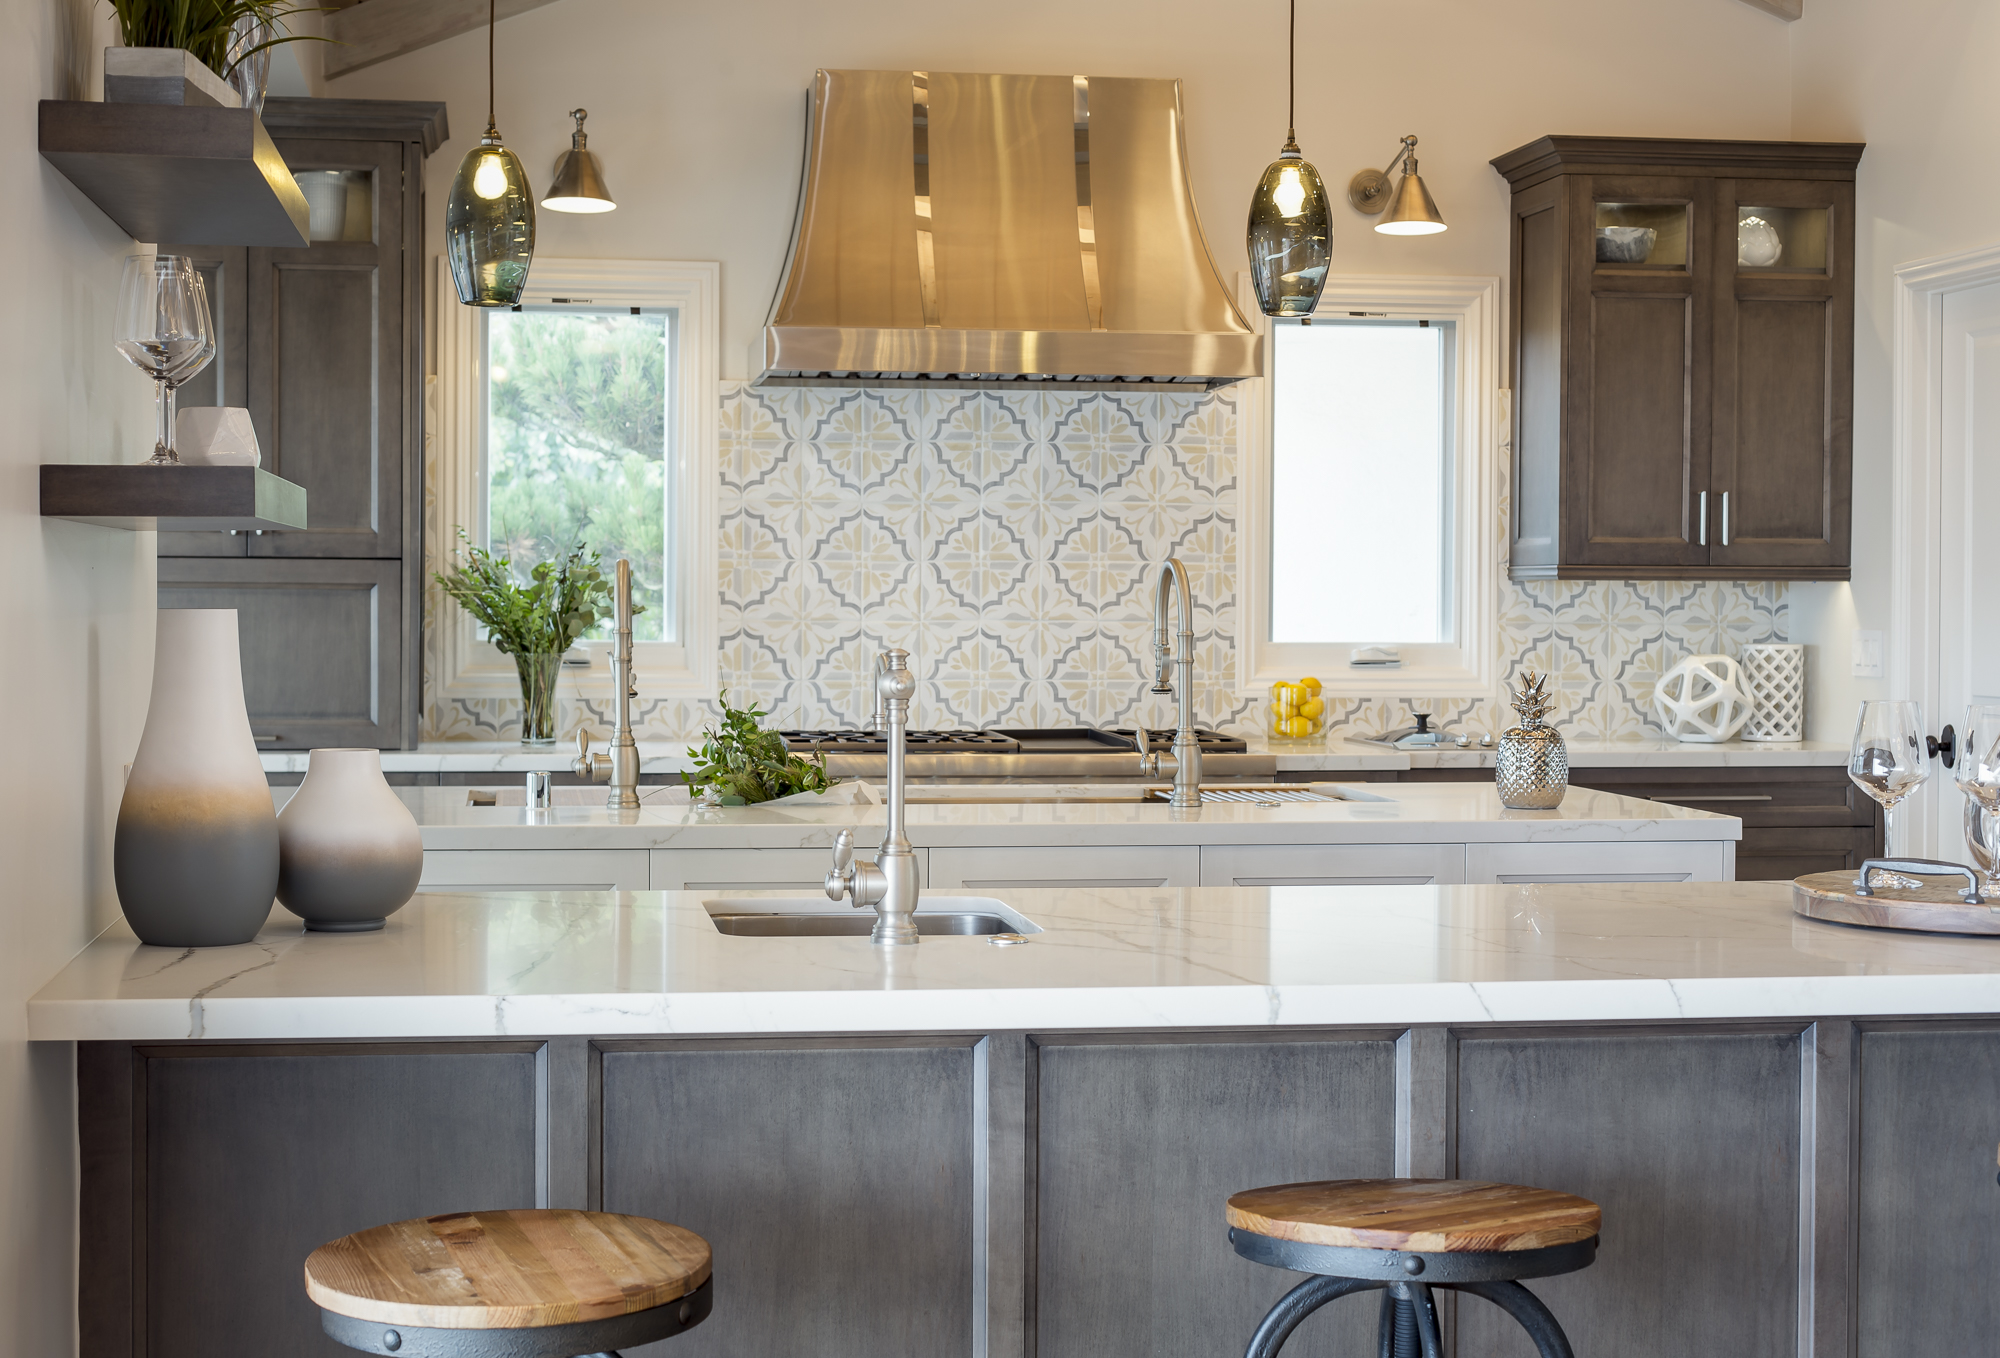 I Spent So Much Time Designing The Functional Space Around This Kitchen And  All The Gizmos That Fit With My Needs And Wants. I Will Get In To Each Of  Those ...